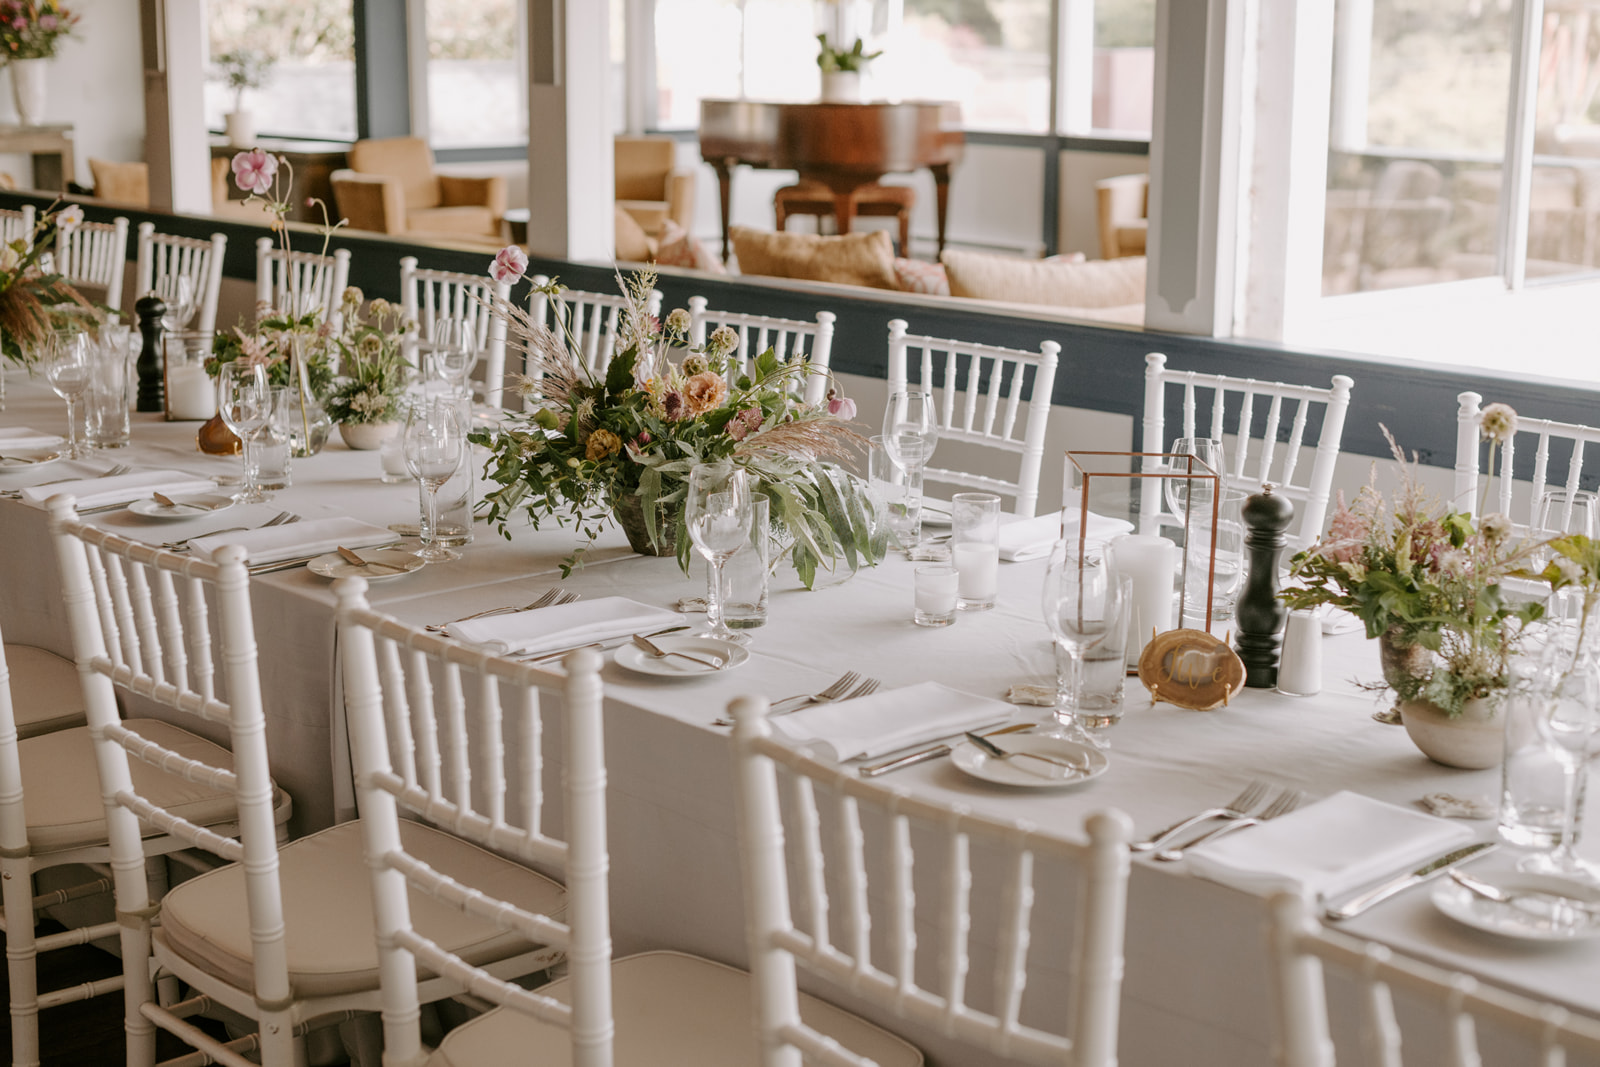 Earthy modern tablescape in soft tones of blush, apricot, and light green by Venn Floral photographed by Kristen Marie Parker.